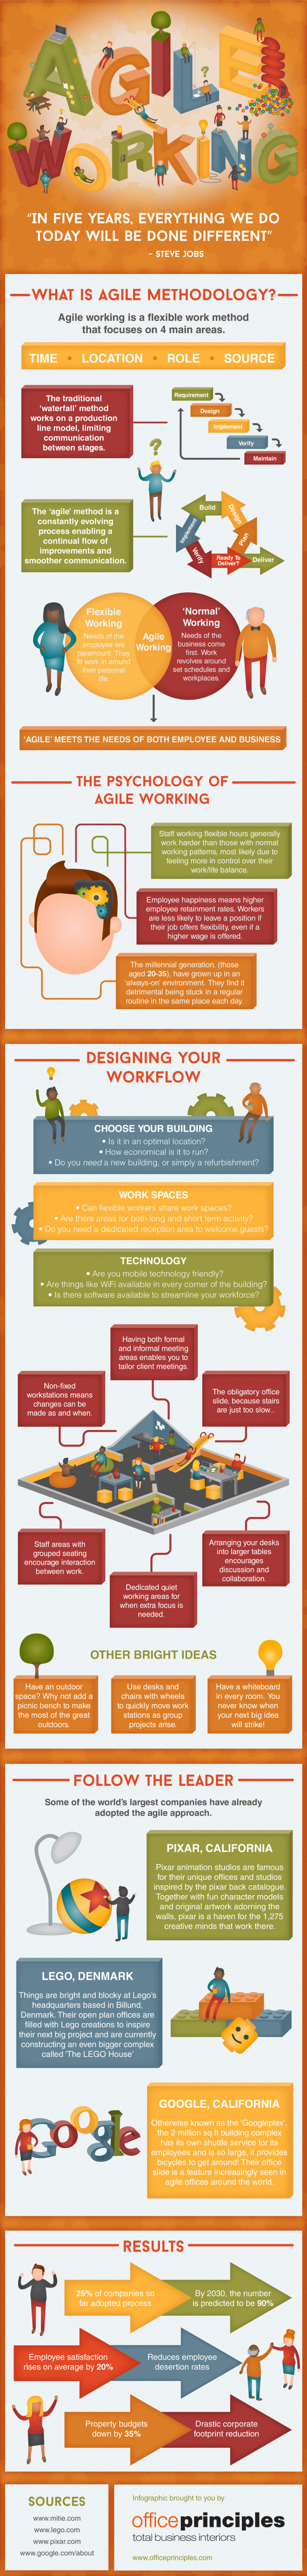 Agile Working Infographic